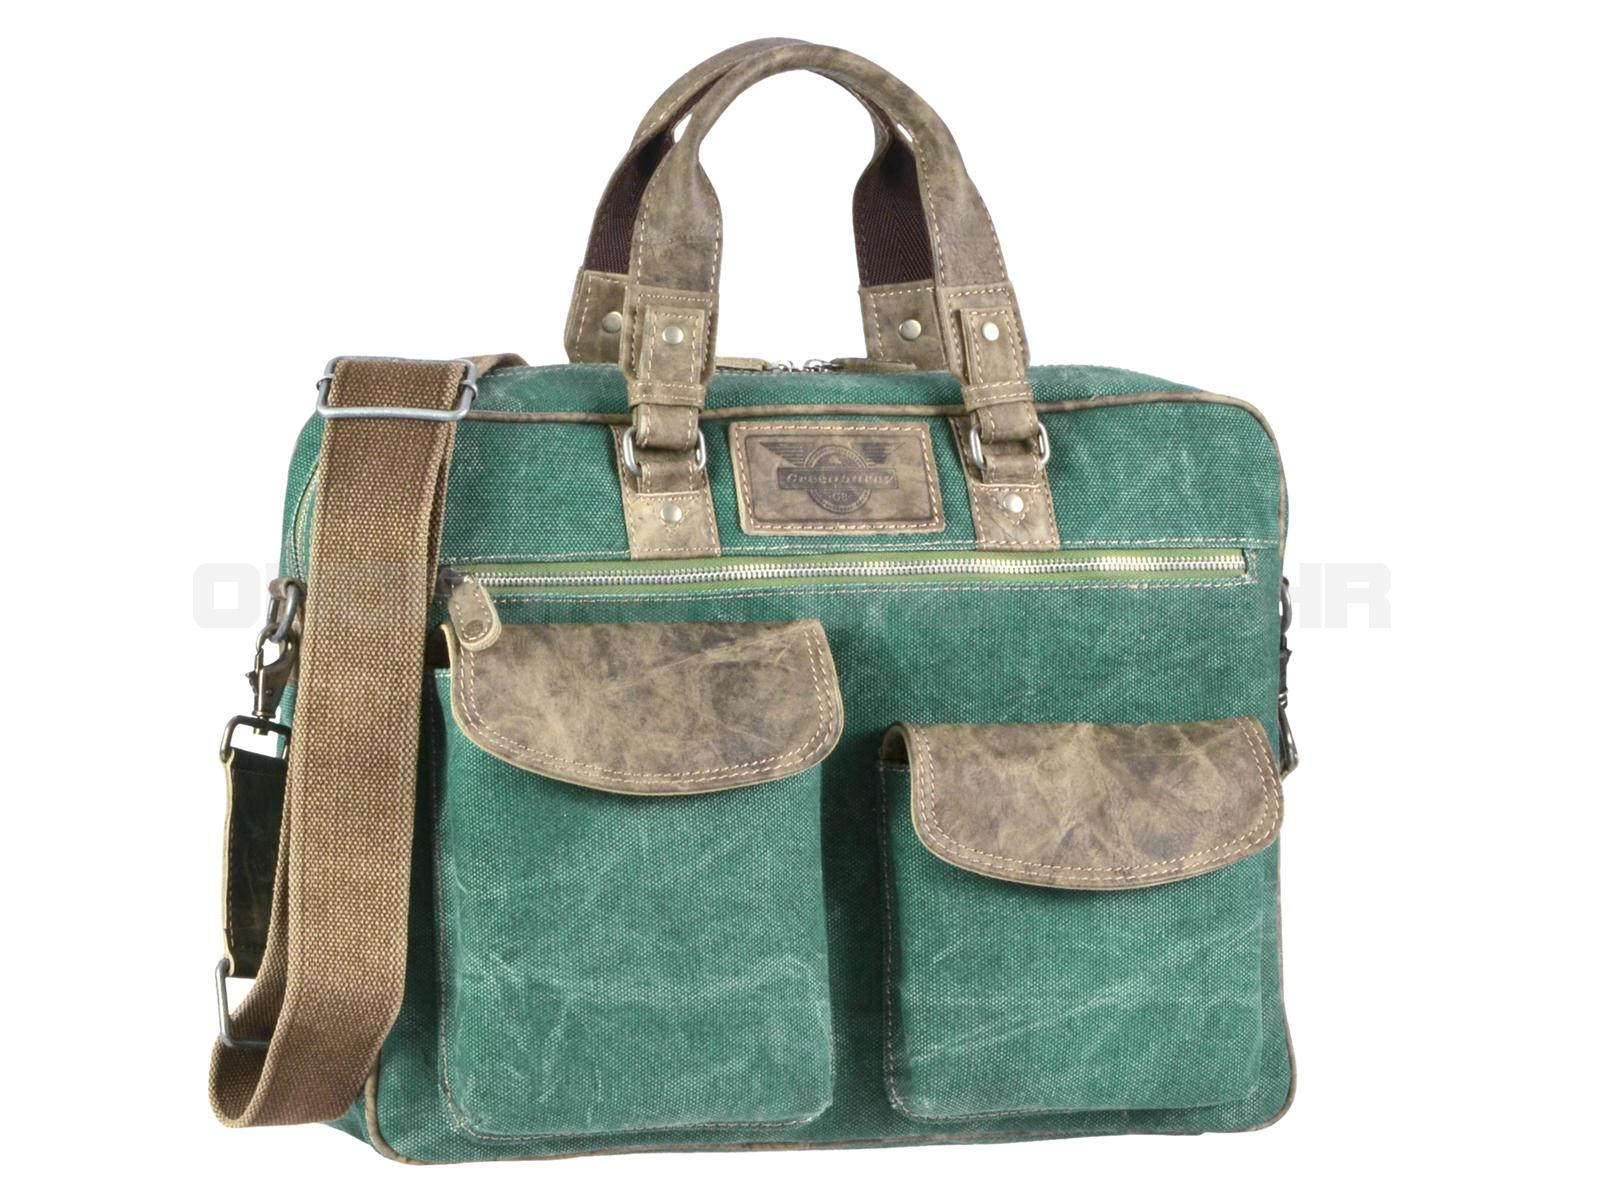 Greenburry Damen Businesstasche aus Canvas mit Leder Aviator 1166